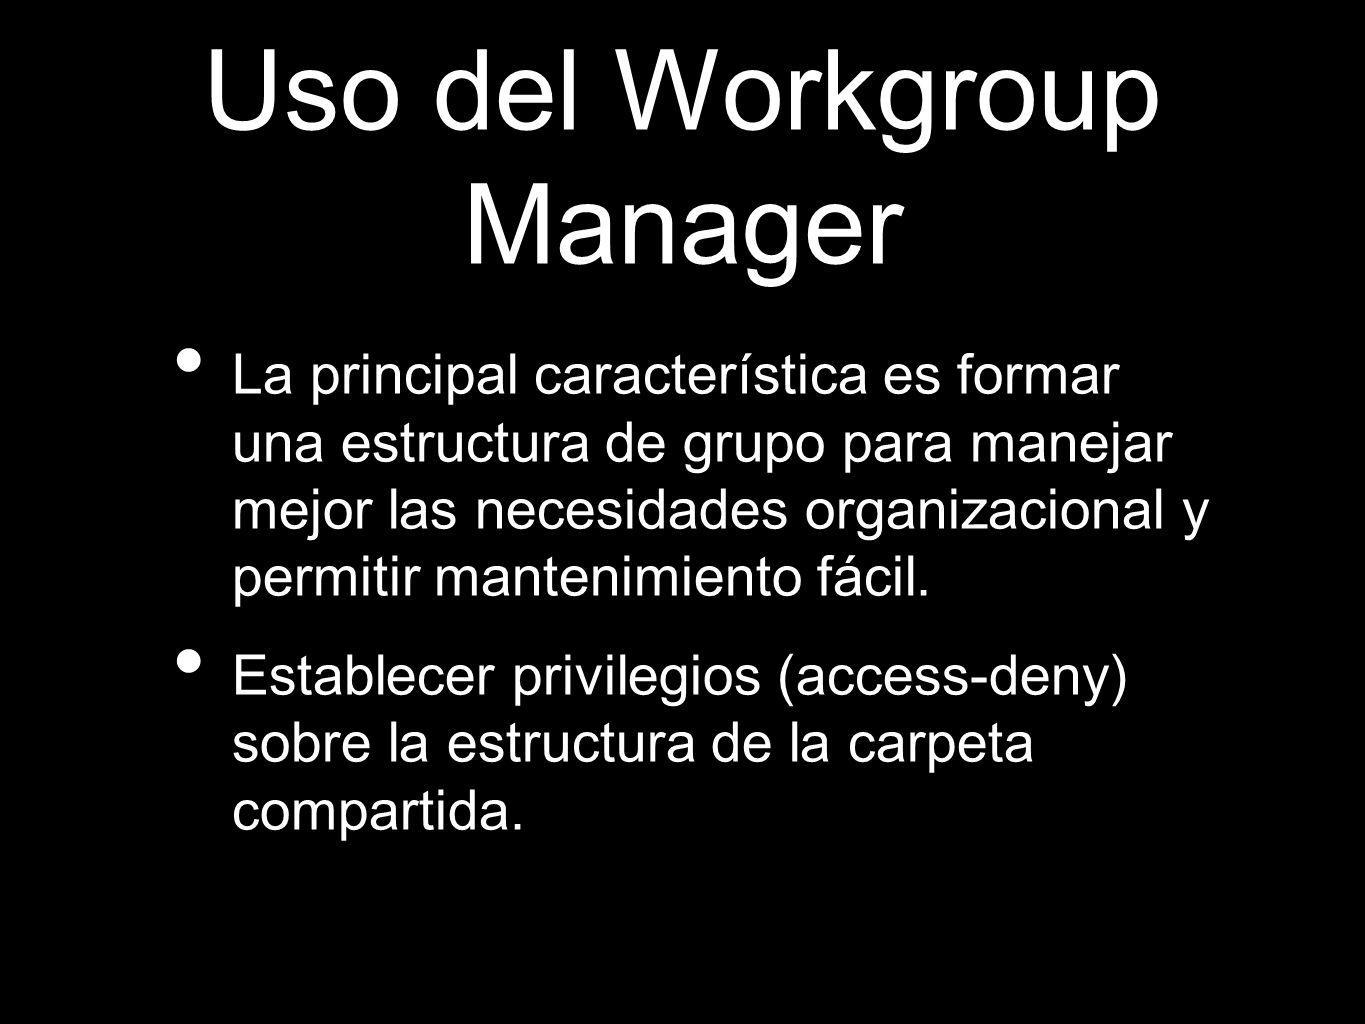 Uso del Workgroup Manager